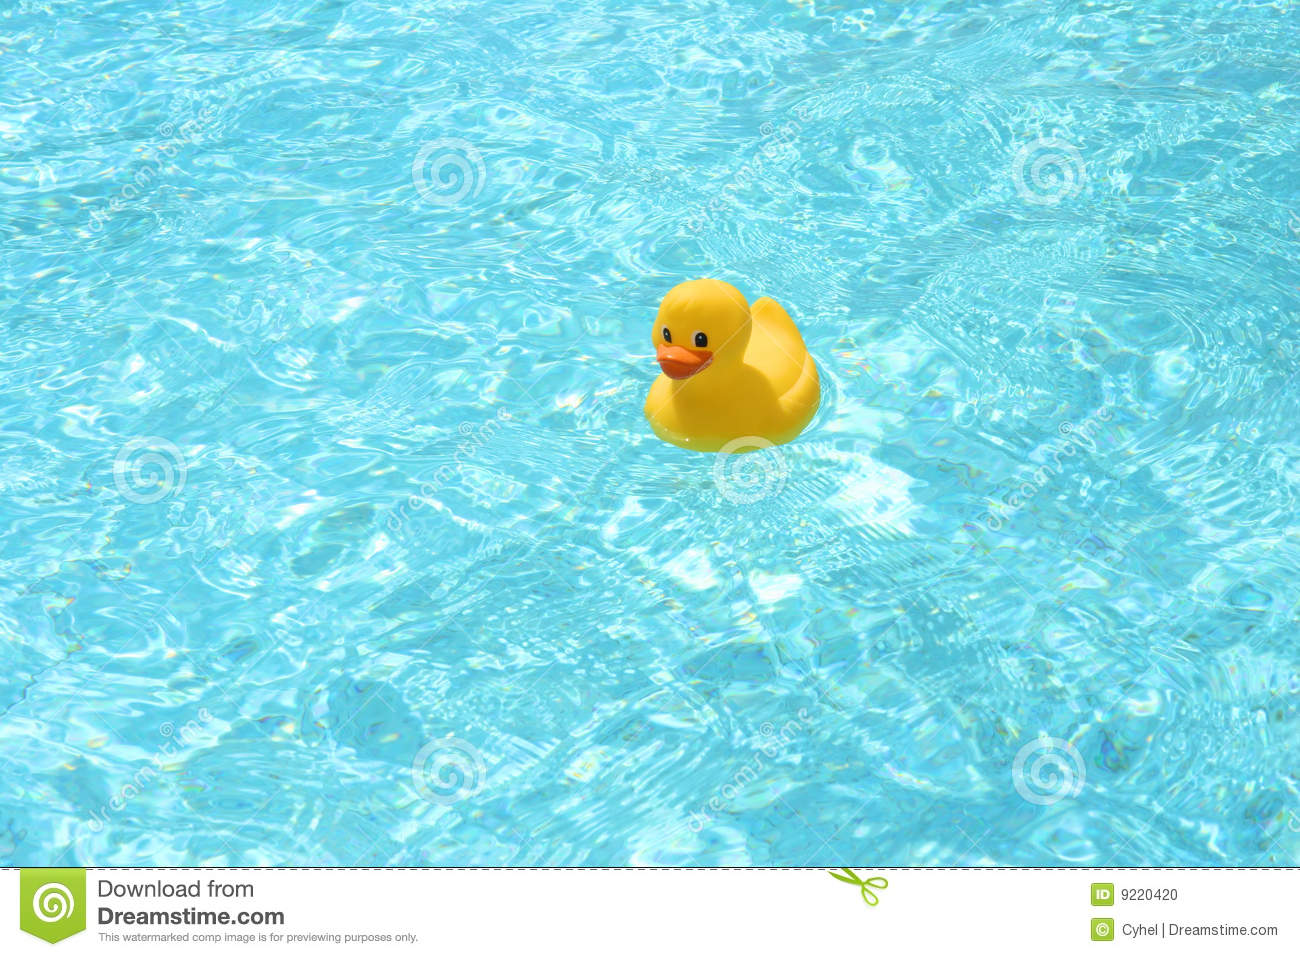 Cute Duckling Wallpaper Toy Duck In The Pool Stock Photo Image Of Blue